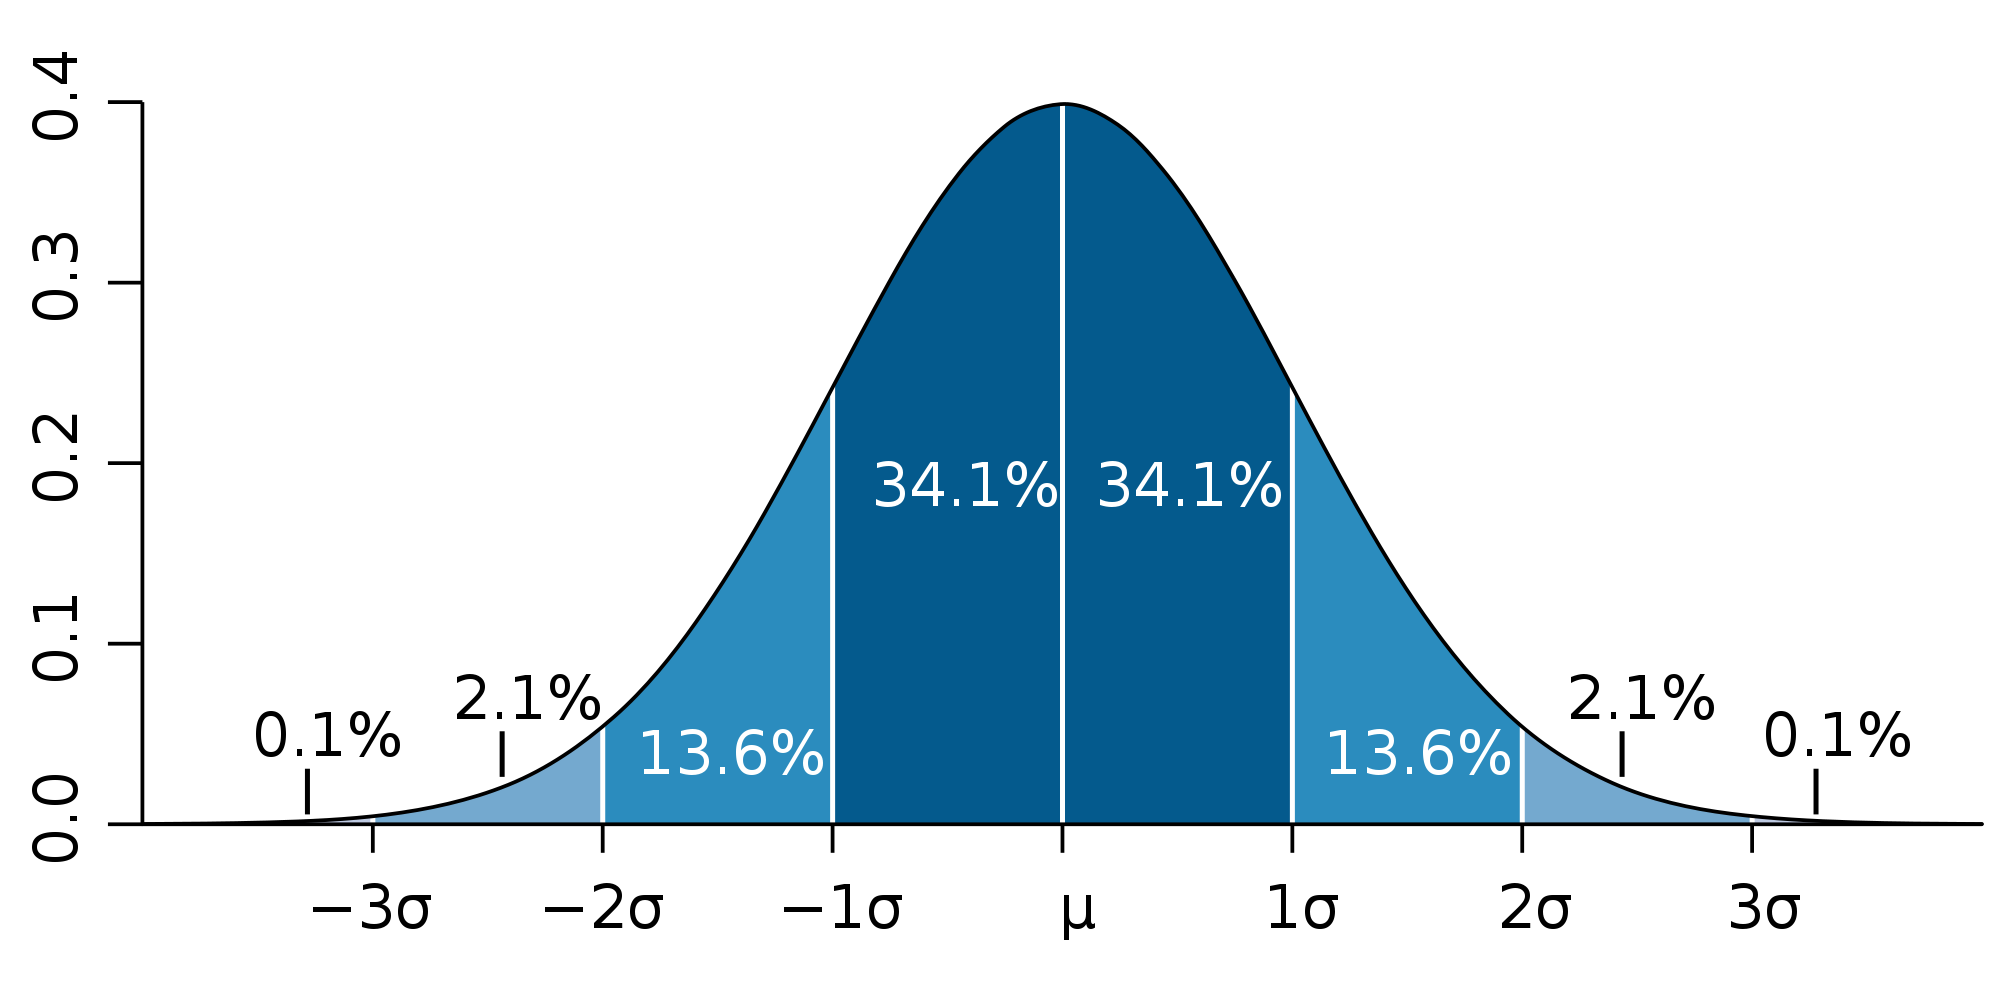 In A Perfectly Normal Curve, Only 0.1% Of Values Fall More Than 3 Standard  Deviations Above The Mean, And Only 0.1% Fall More Than 3 Standard  Deviations ...